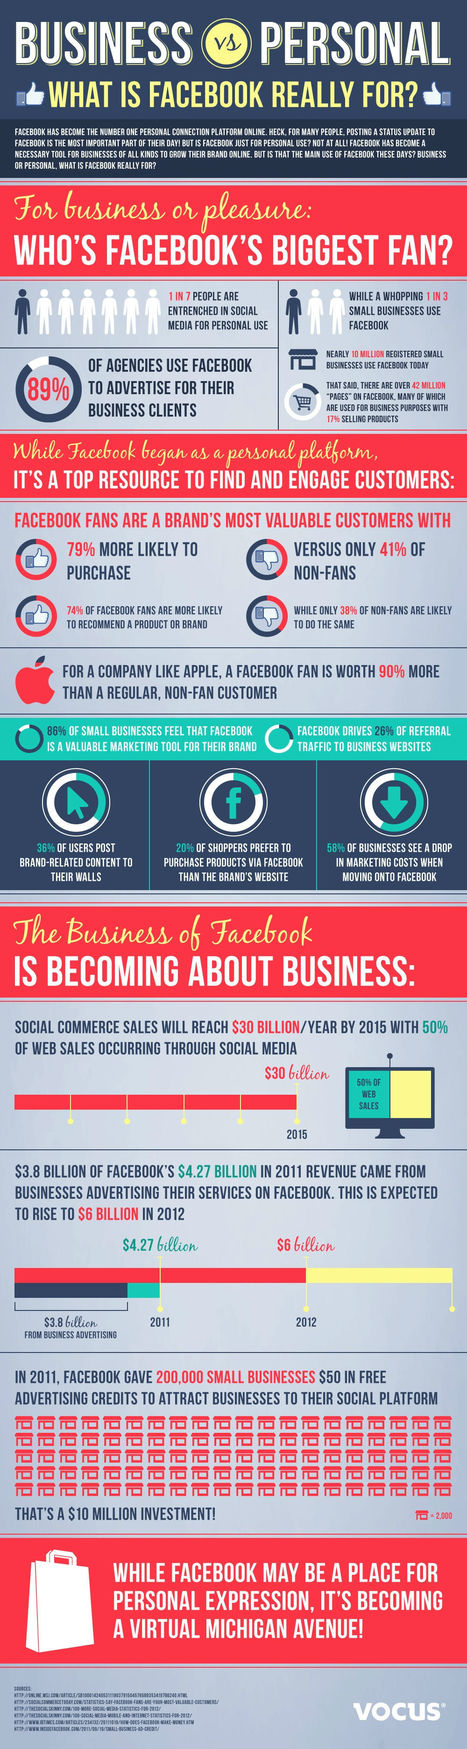 Why Sales on Social Media Will Be Huge By 2015 [INFOGRAPHIC] | Social Media Savvy | Scoop.it